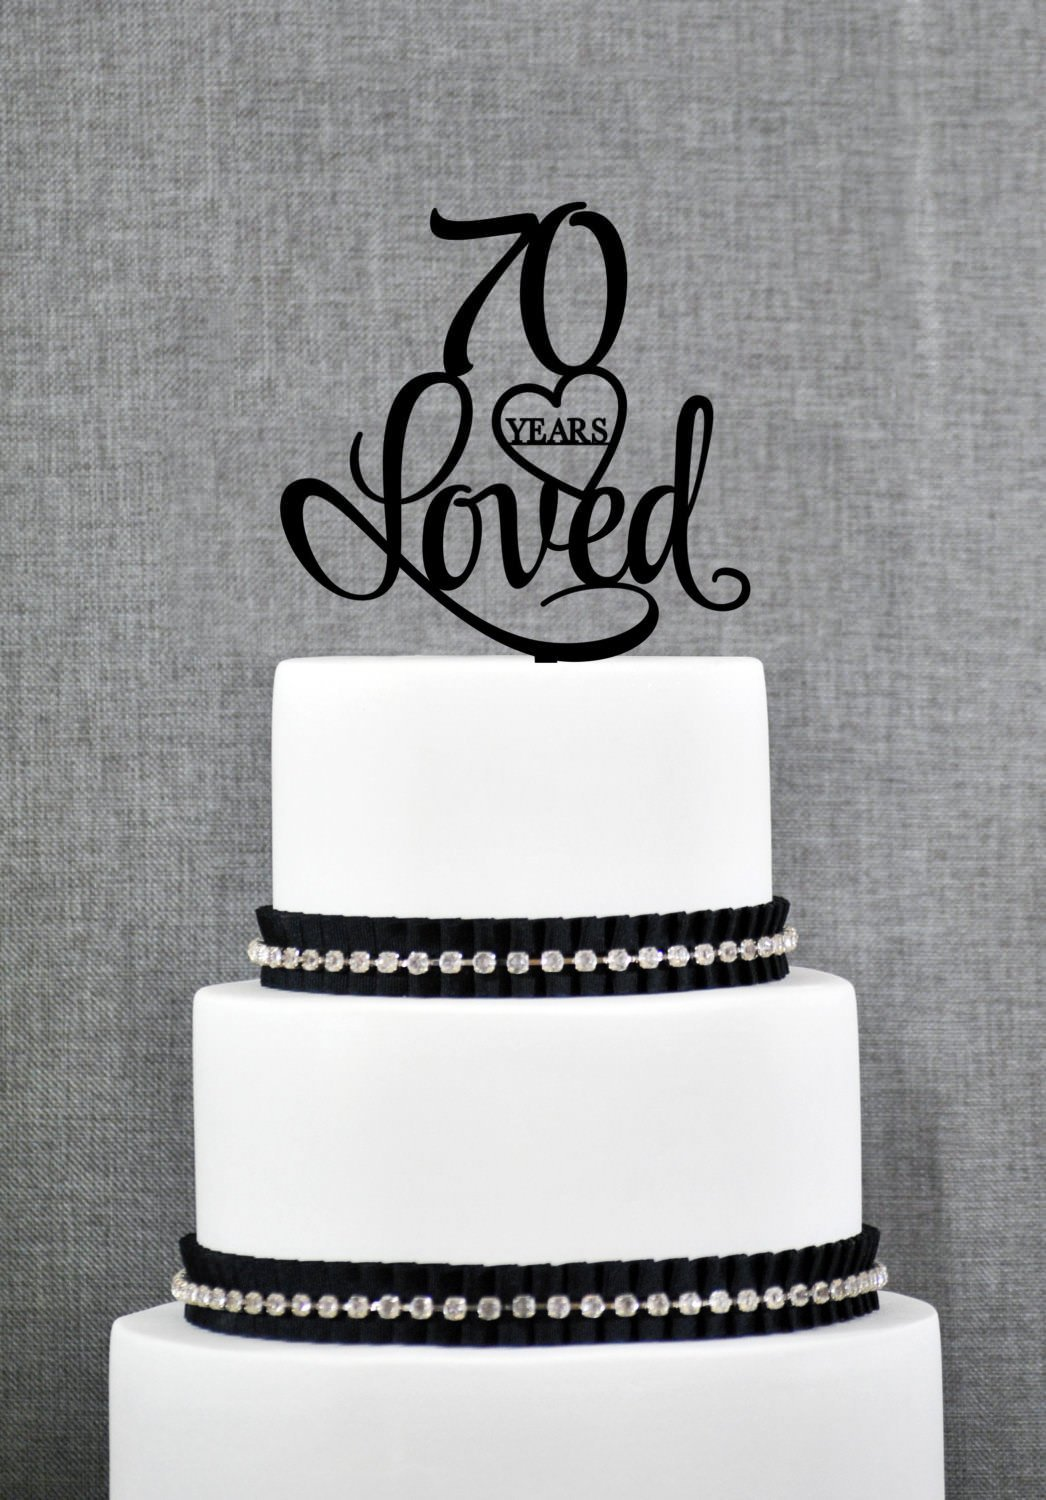 Buy Happy 70th Birthday Anniversary Number Cake Topper Party